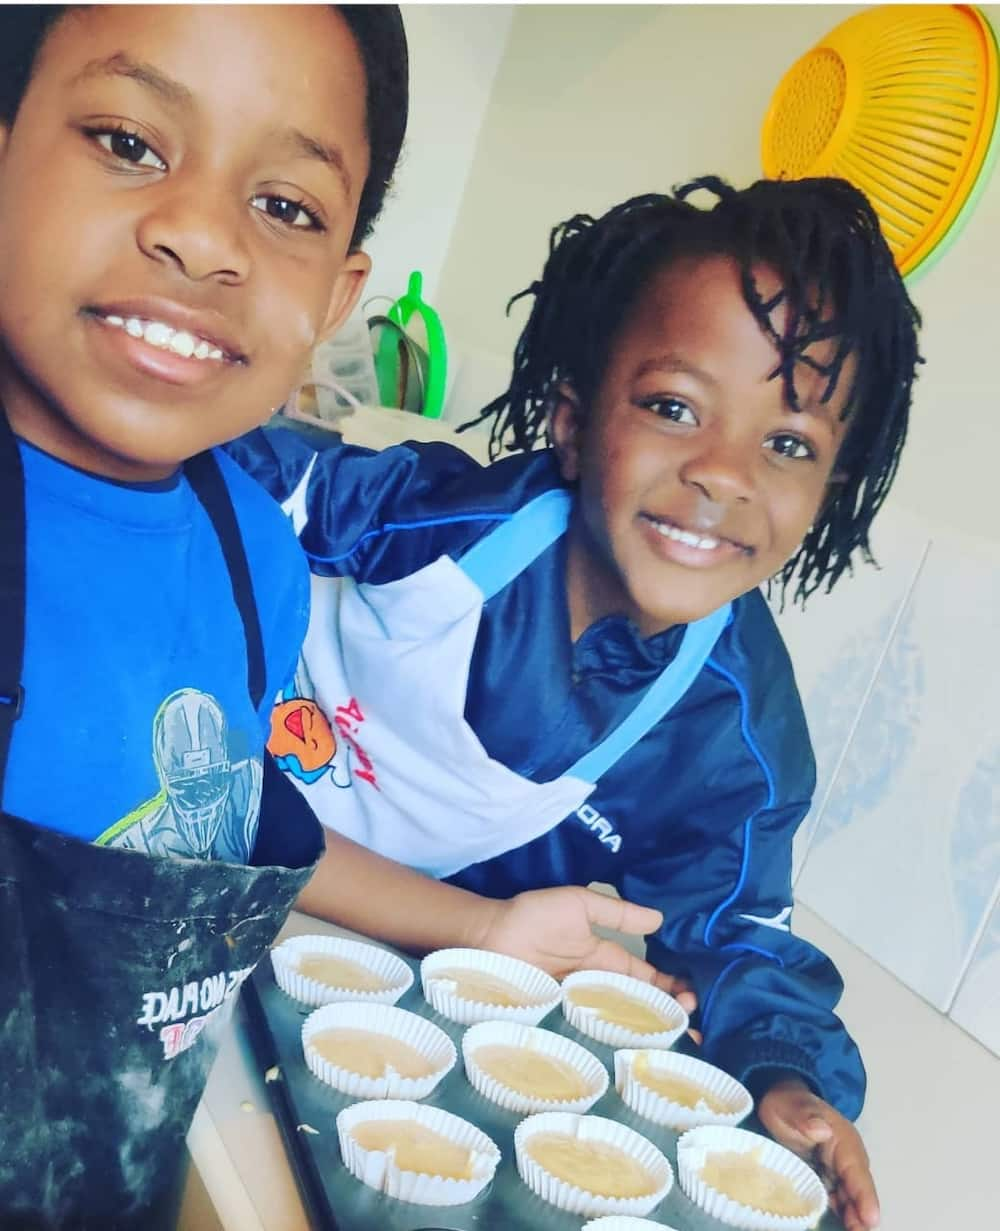 Perry Kanana: Parenting Keff the Wonder Boy Cooking Champion